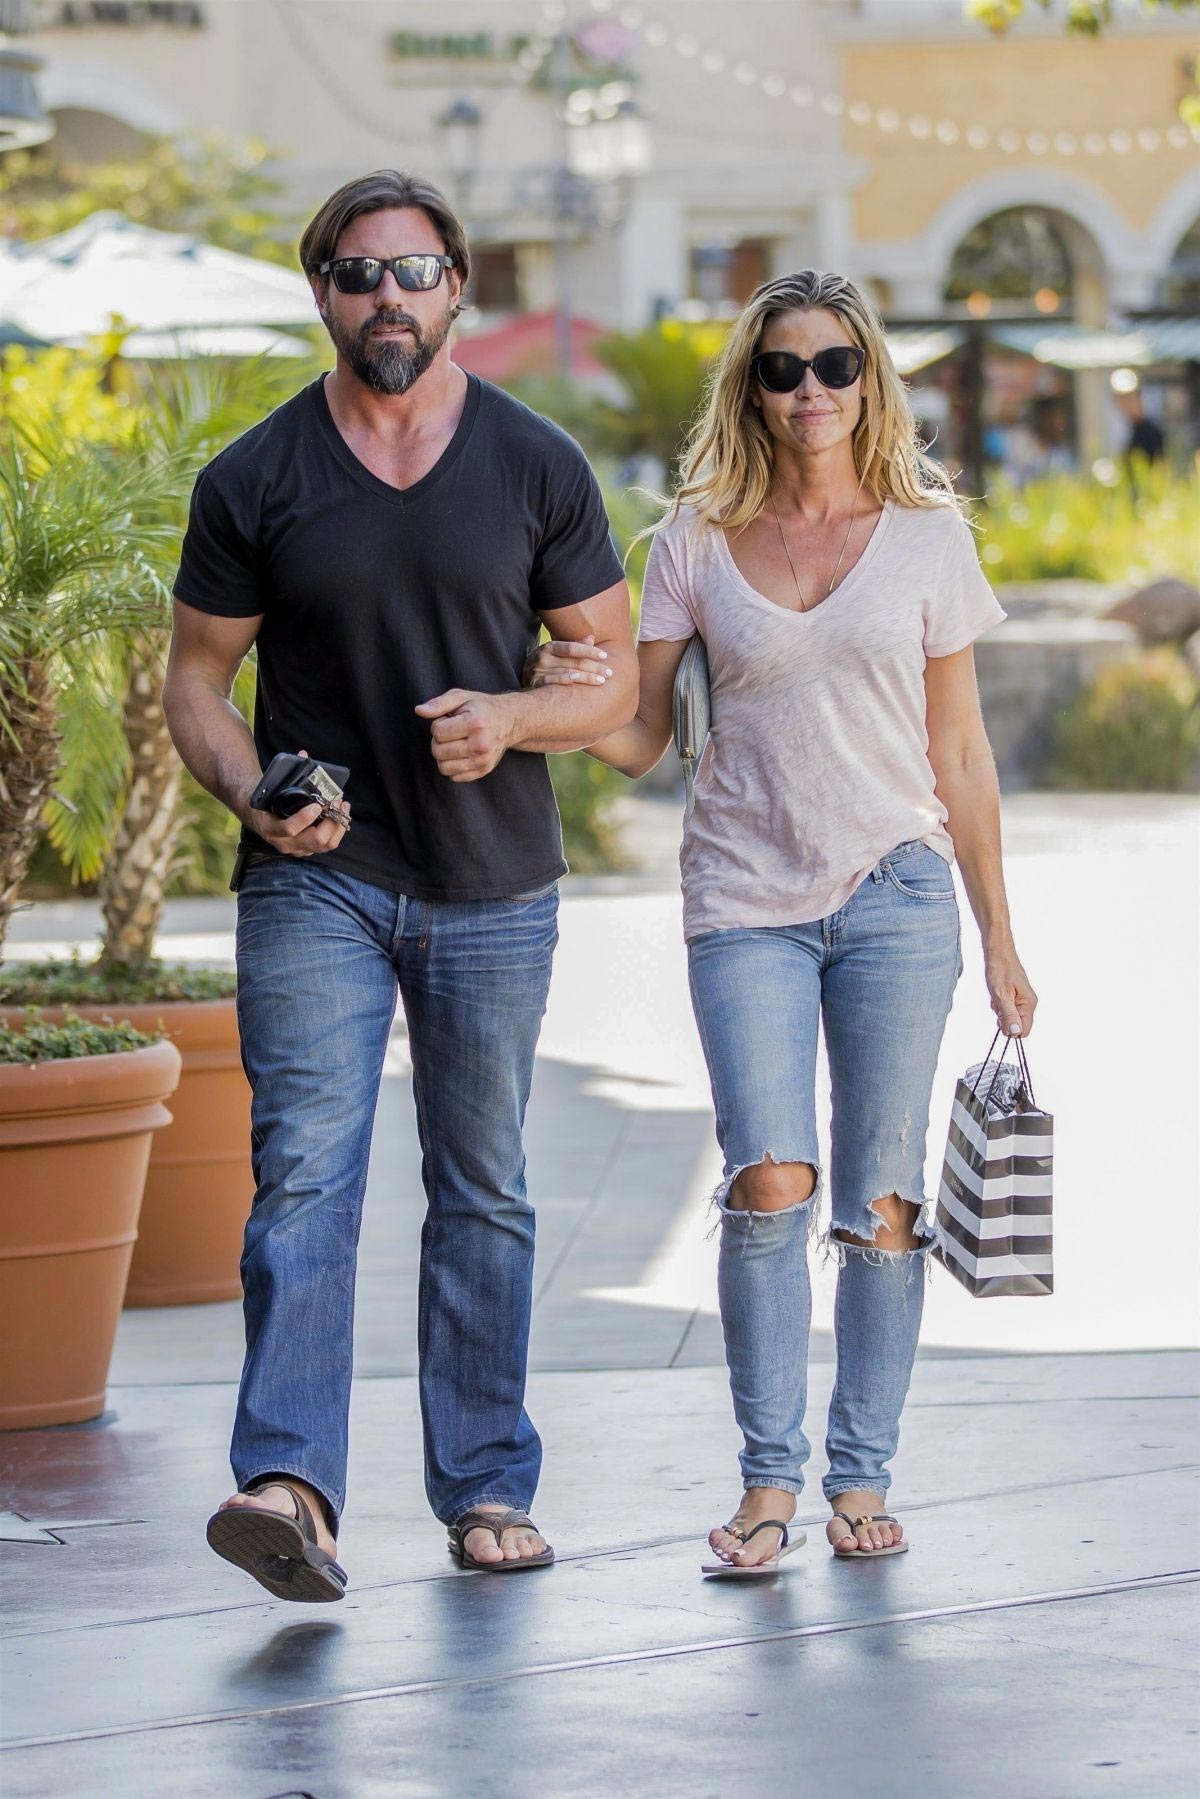 denise richards and aaron phypers out in calabasas 2018 08 14 06 - Denise Richards and Aaron Phypers Out in Calabasas 2018/08/14